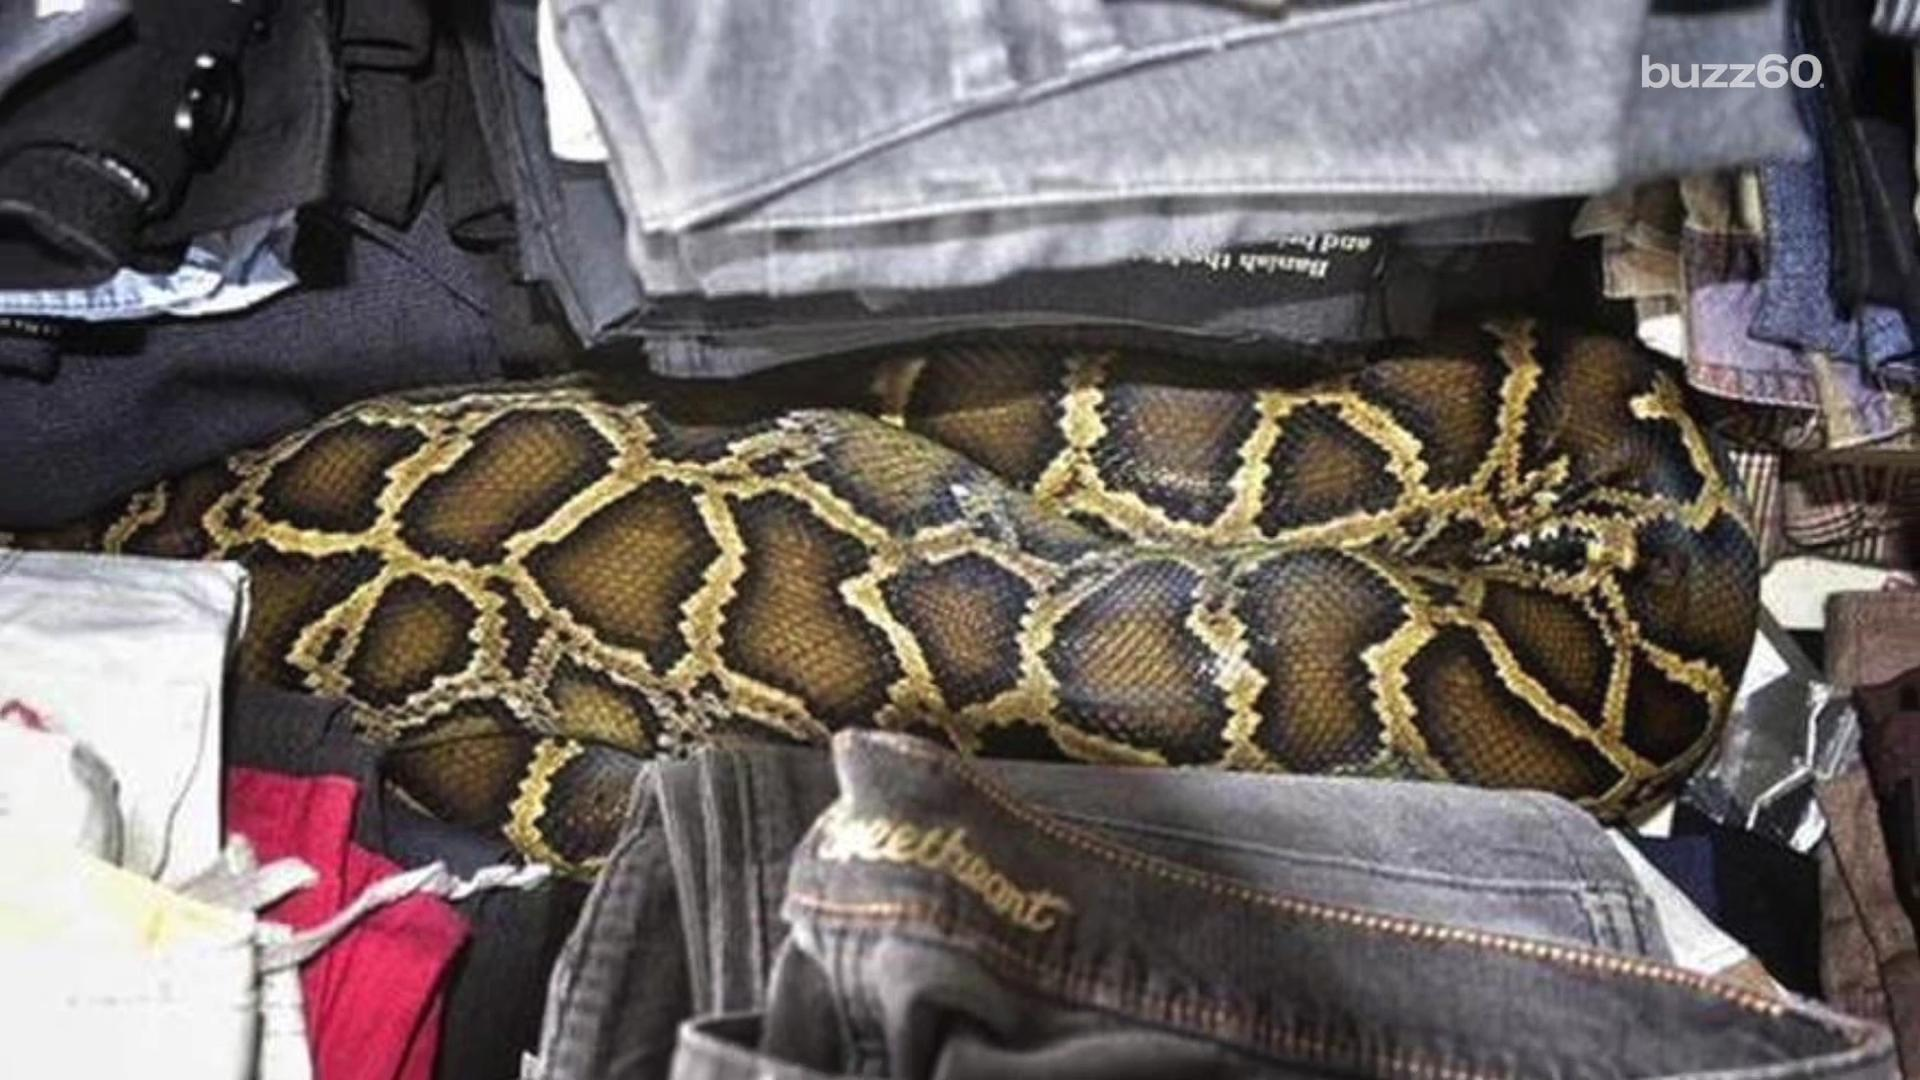 8-foot snake found hidden in clothes at flea market